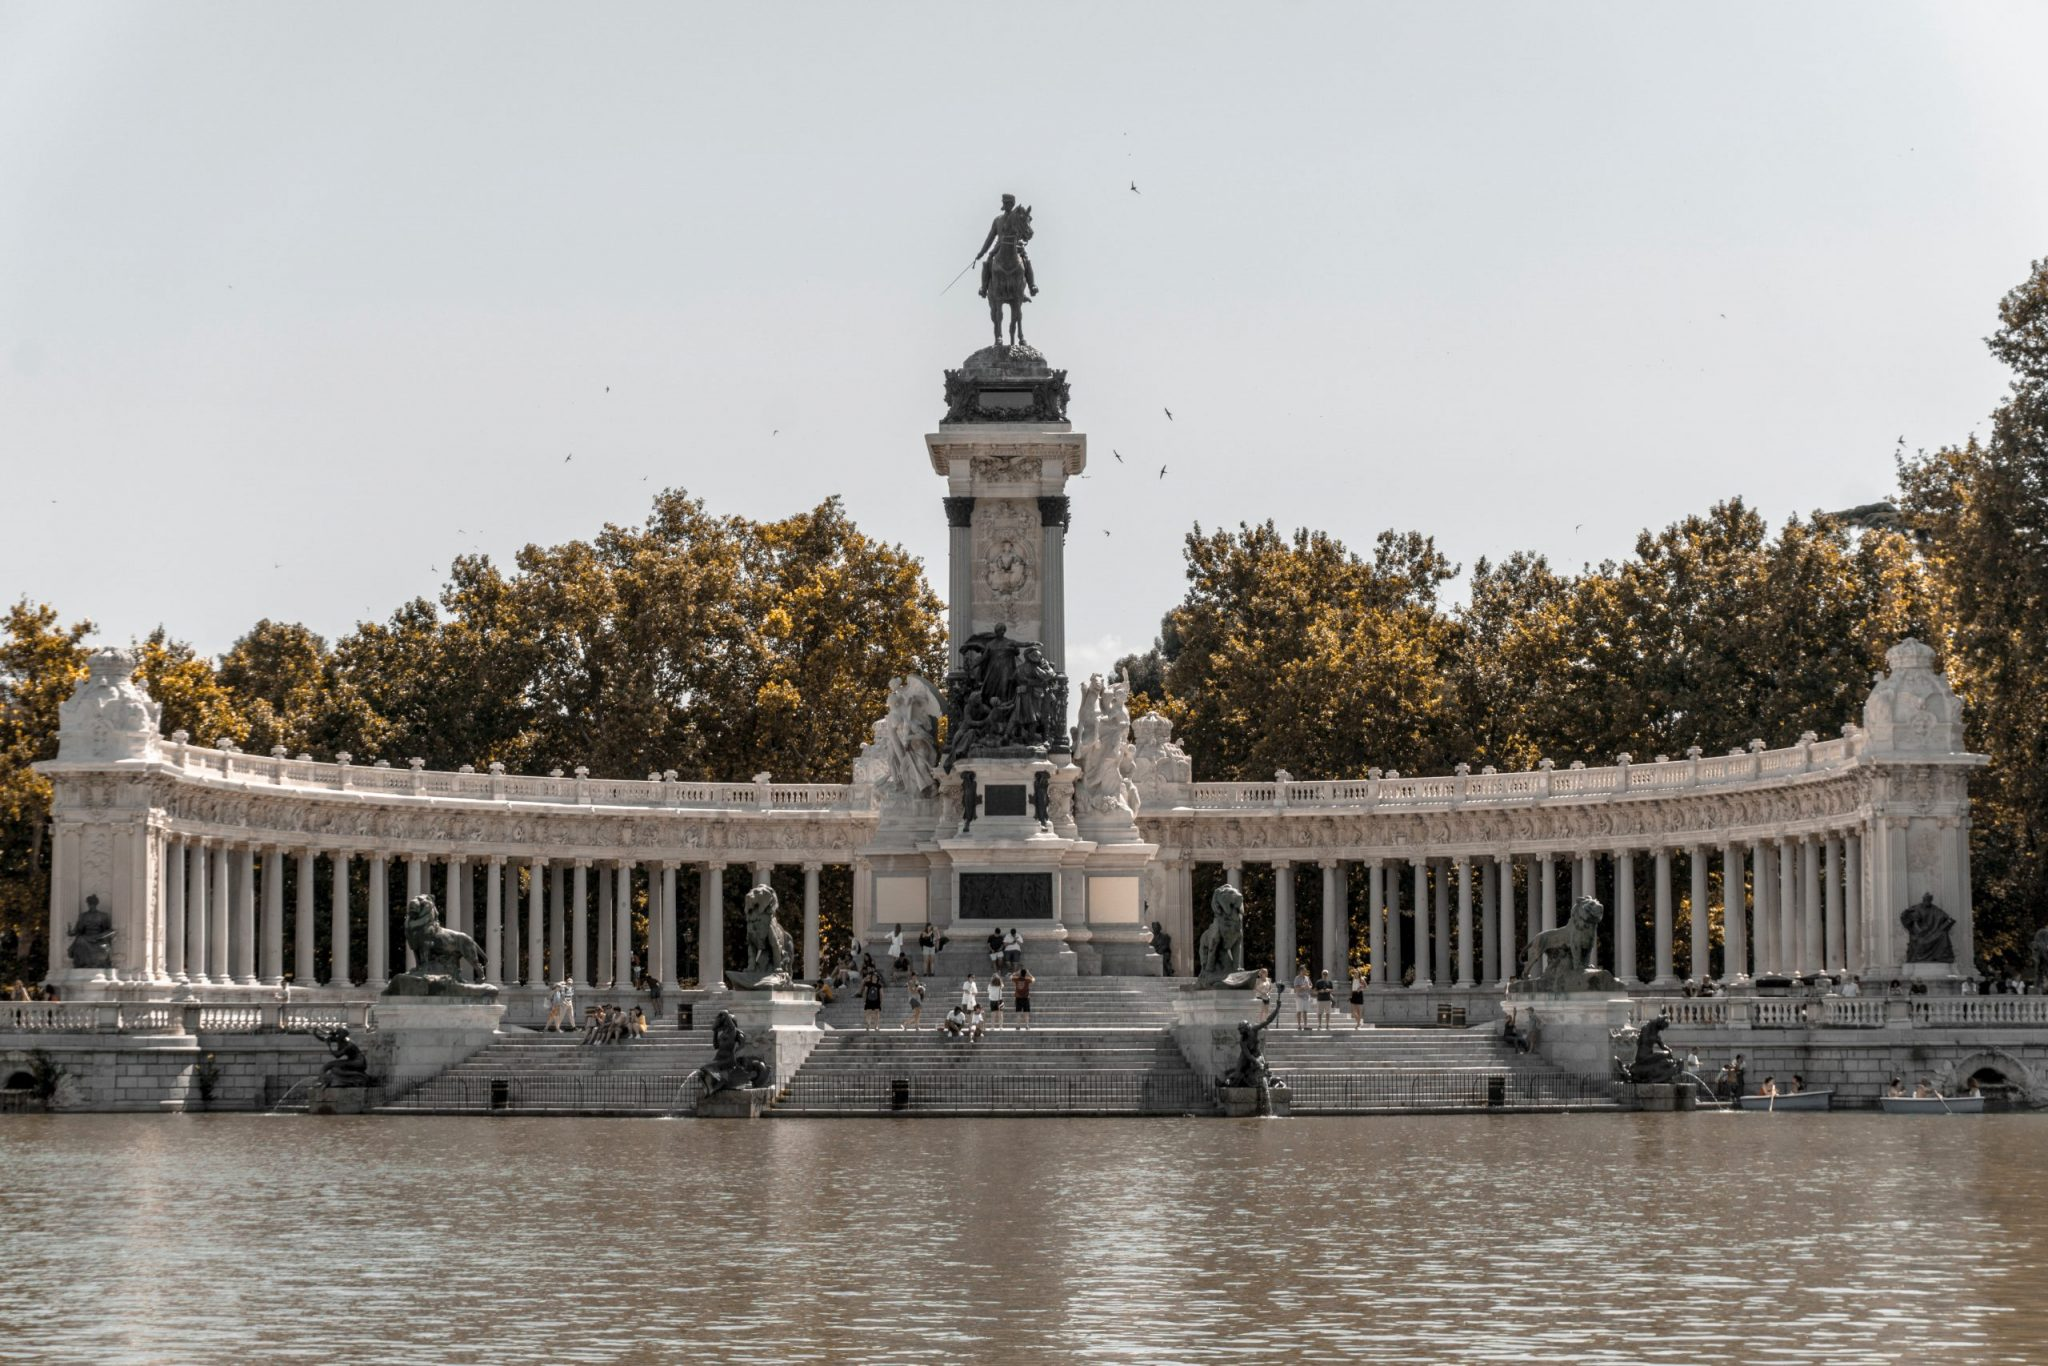 A photo of the pond at Buen Retiro Park in Madrid, Spain